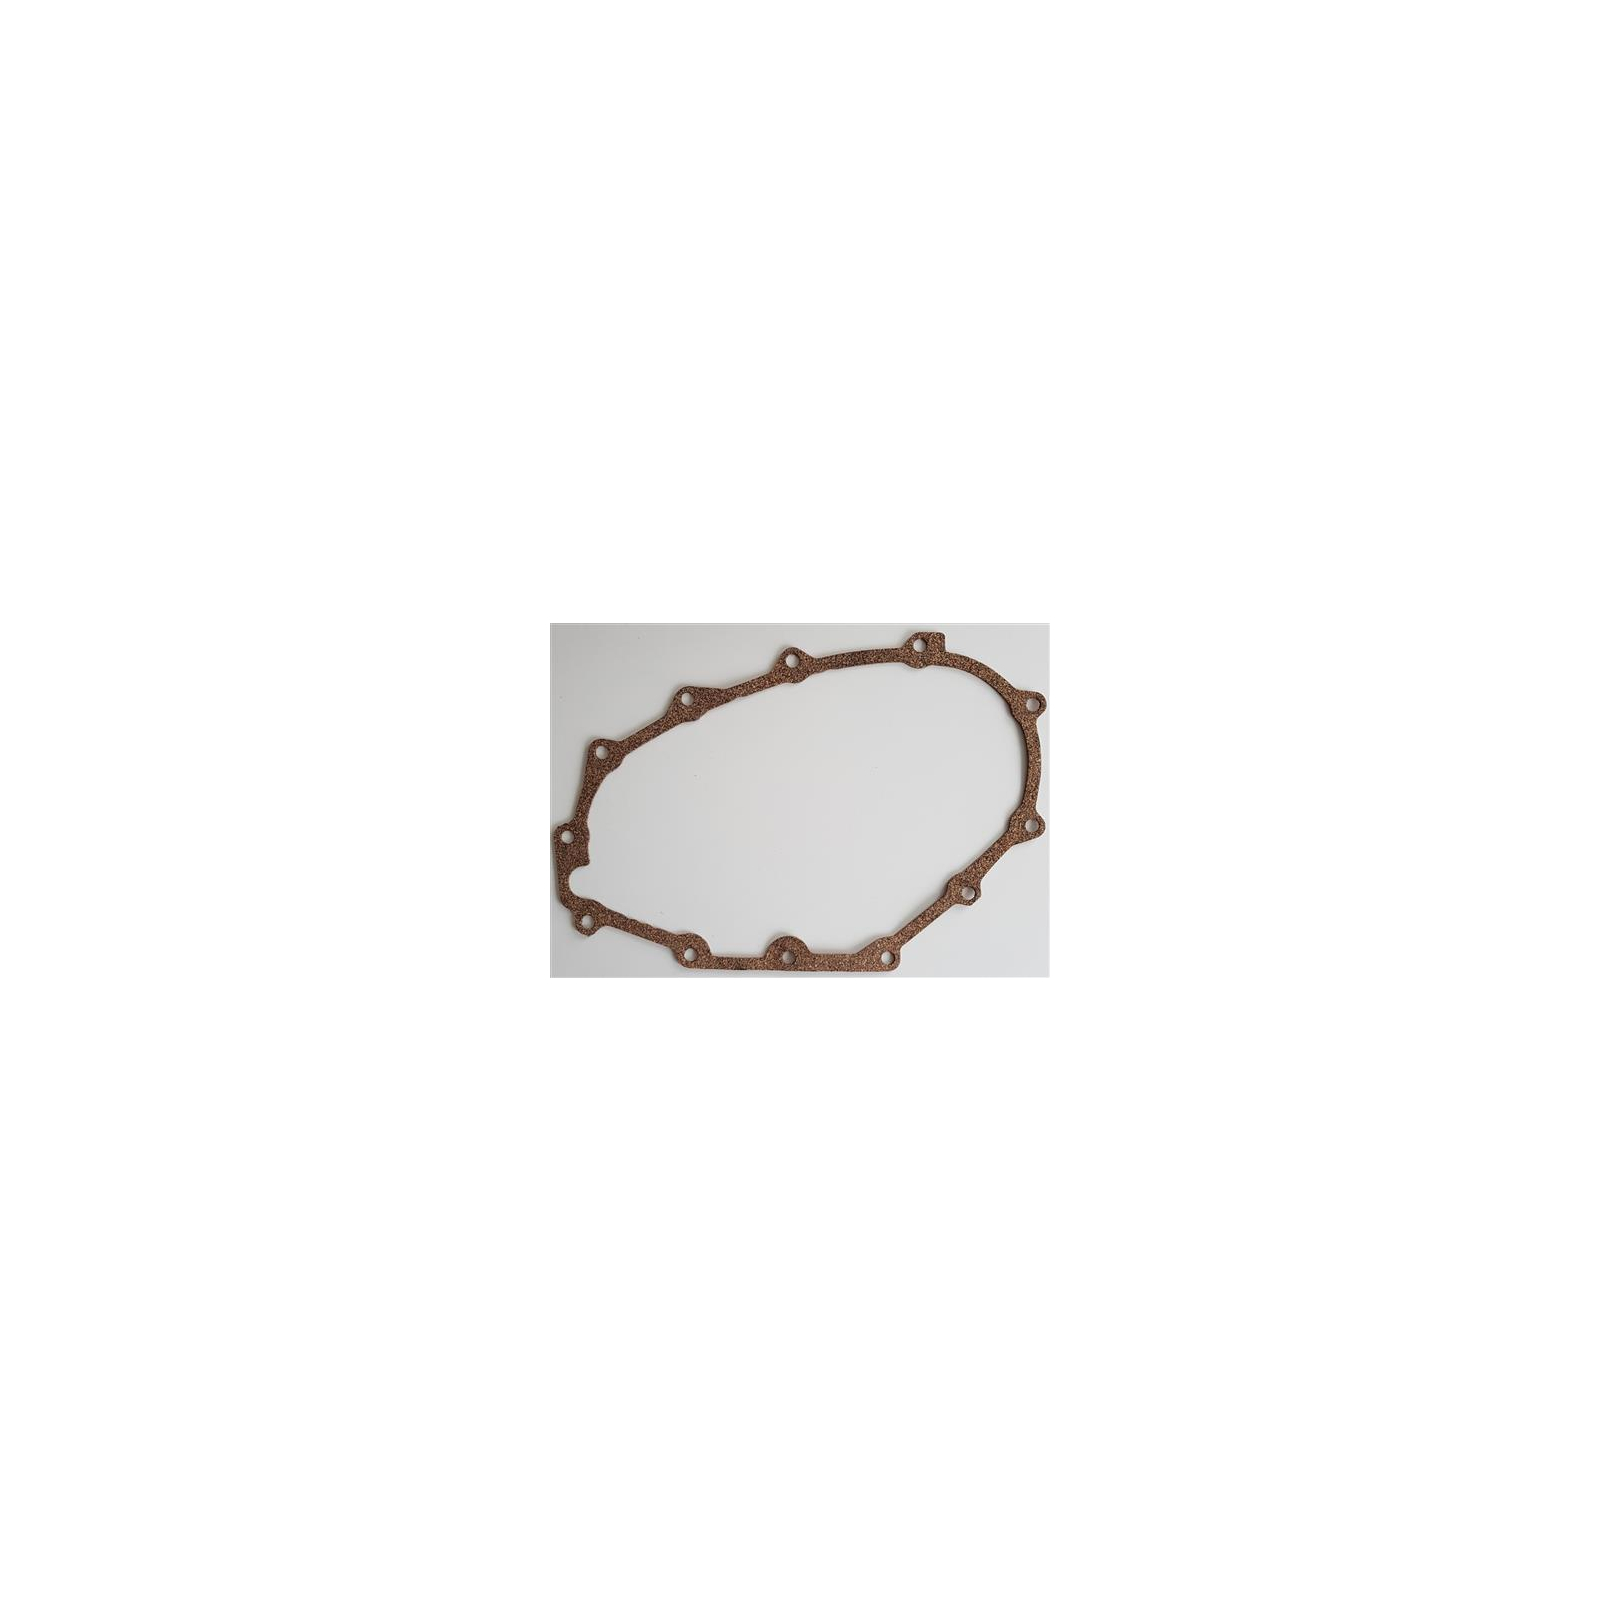 A606 42LE Gasket Chain cover,Cork & Neoprene 93-up